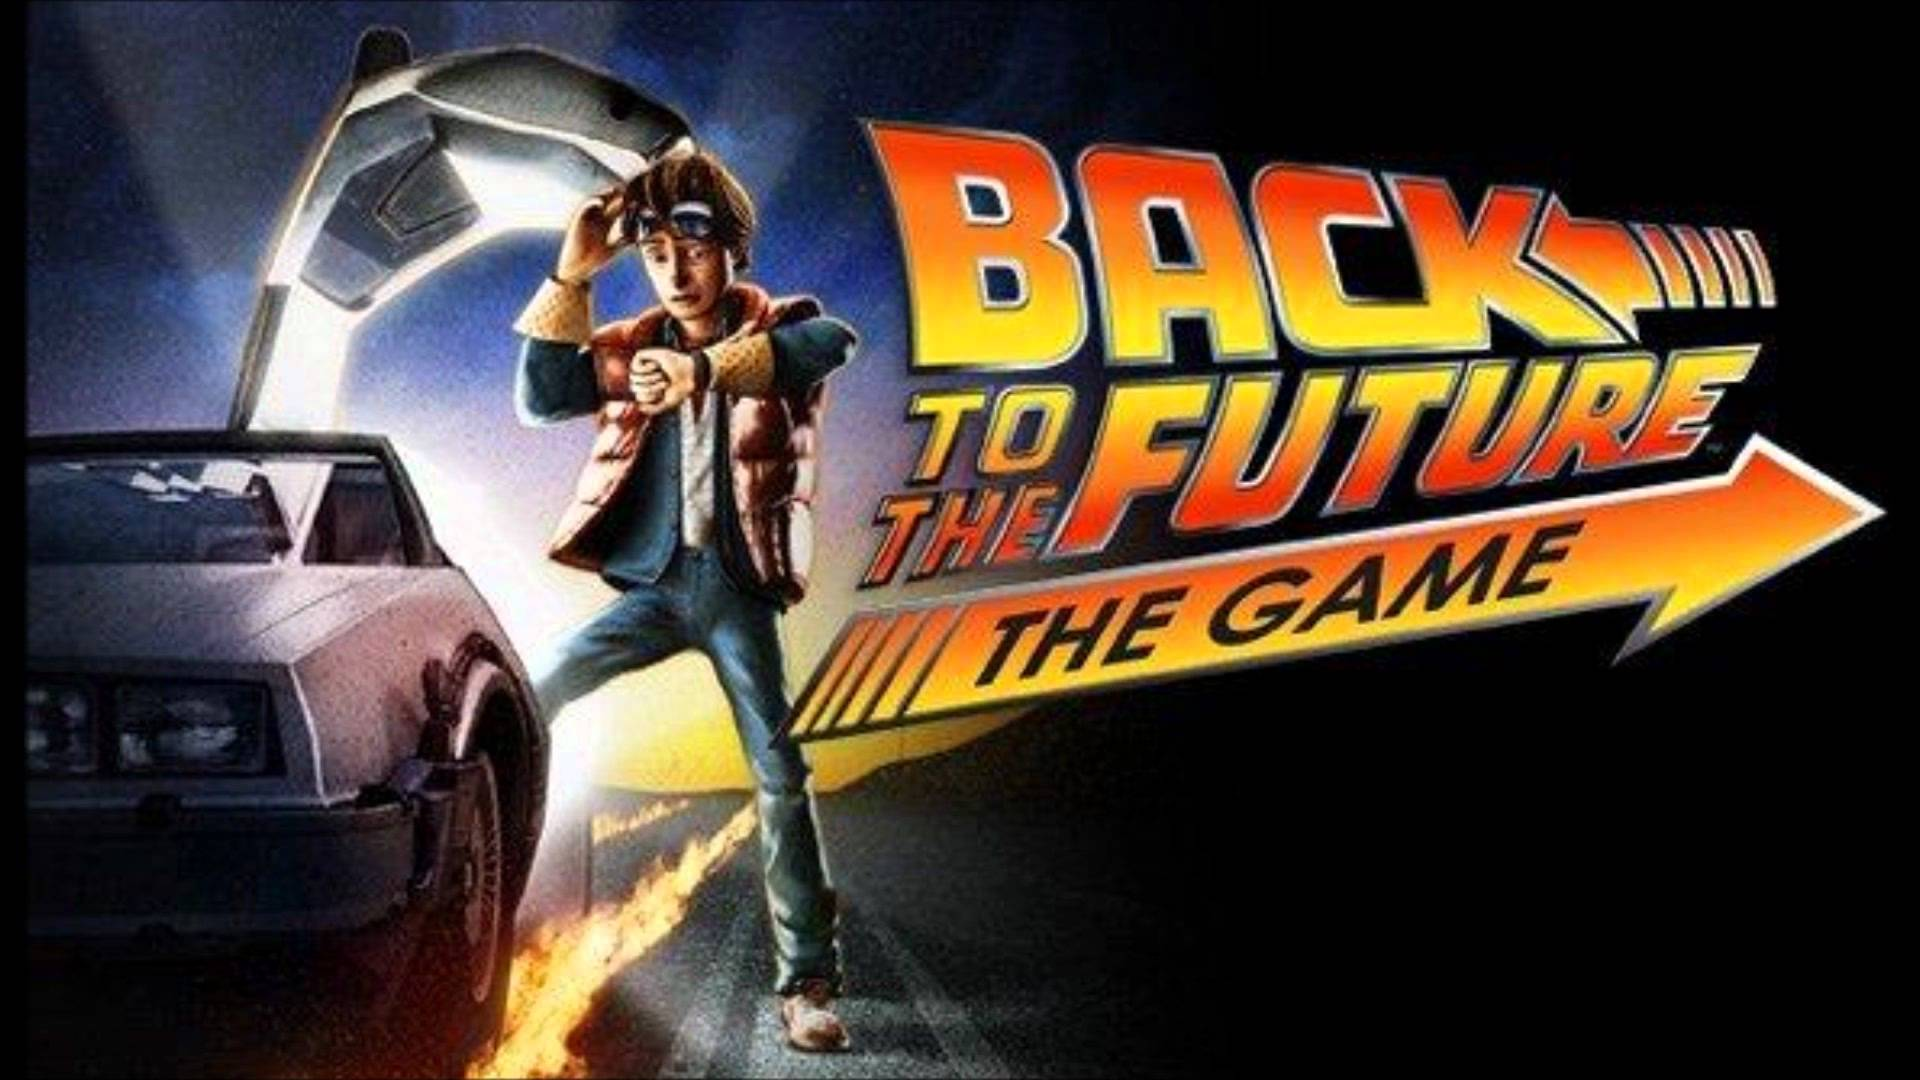 """The music is a major factor in this game. The haunting melodies by Jared Emerson-Johnson invoke the same excitement of the movie's classic scenes, while paying homage to Alan Silvestri's original film scoring.    ""   -  sfsite.com  on Back to the Future: The Game      ""A lot of the credit has to go to getting all the…character voices right…. Ditto for the music…   ""   -  joystiq.com  on Back to the Future: The Game      ""The sound is uniformly excellent…The soundtrack as a whole lends a welcome cinematic urgency to the game that makes everything feel a little more dynamic and dramatic than previous Telltale games.   ""   -  adventuregamers.com  on Back to the Future: The Game      ""Music (5/5) When samples from the movies aren't used, Jared Emerson-Johnson does a great job of incorporating similar themes in the music he has composed for the game.   ""   -  choicestgames.blogspot.com  on Back to the Future: The Game"